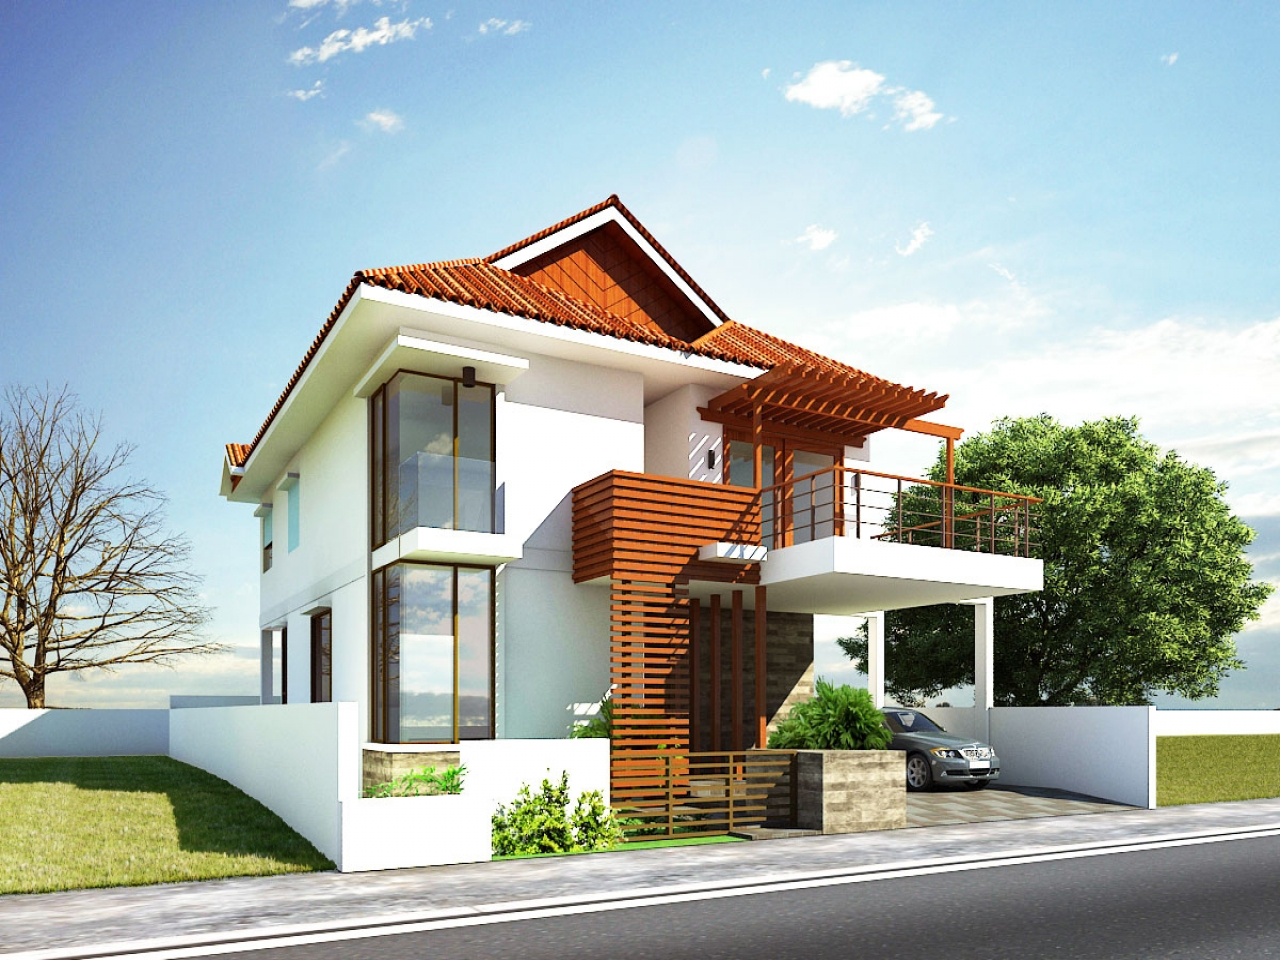 Modern house exterior design ideas best modern house for Classic house design philippines